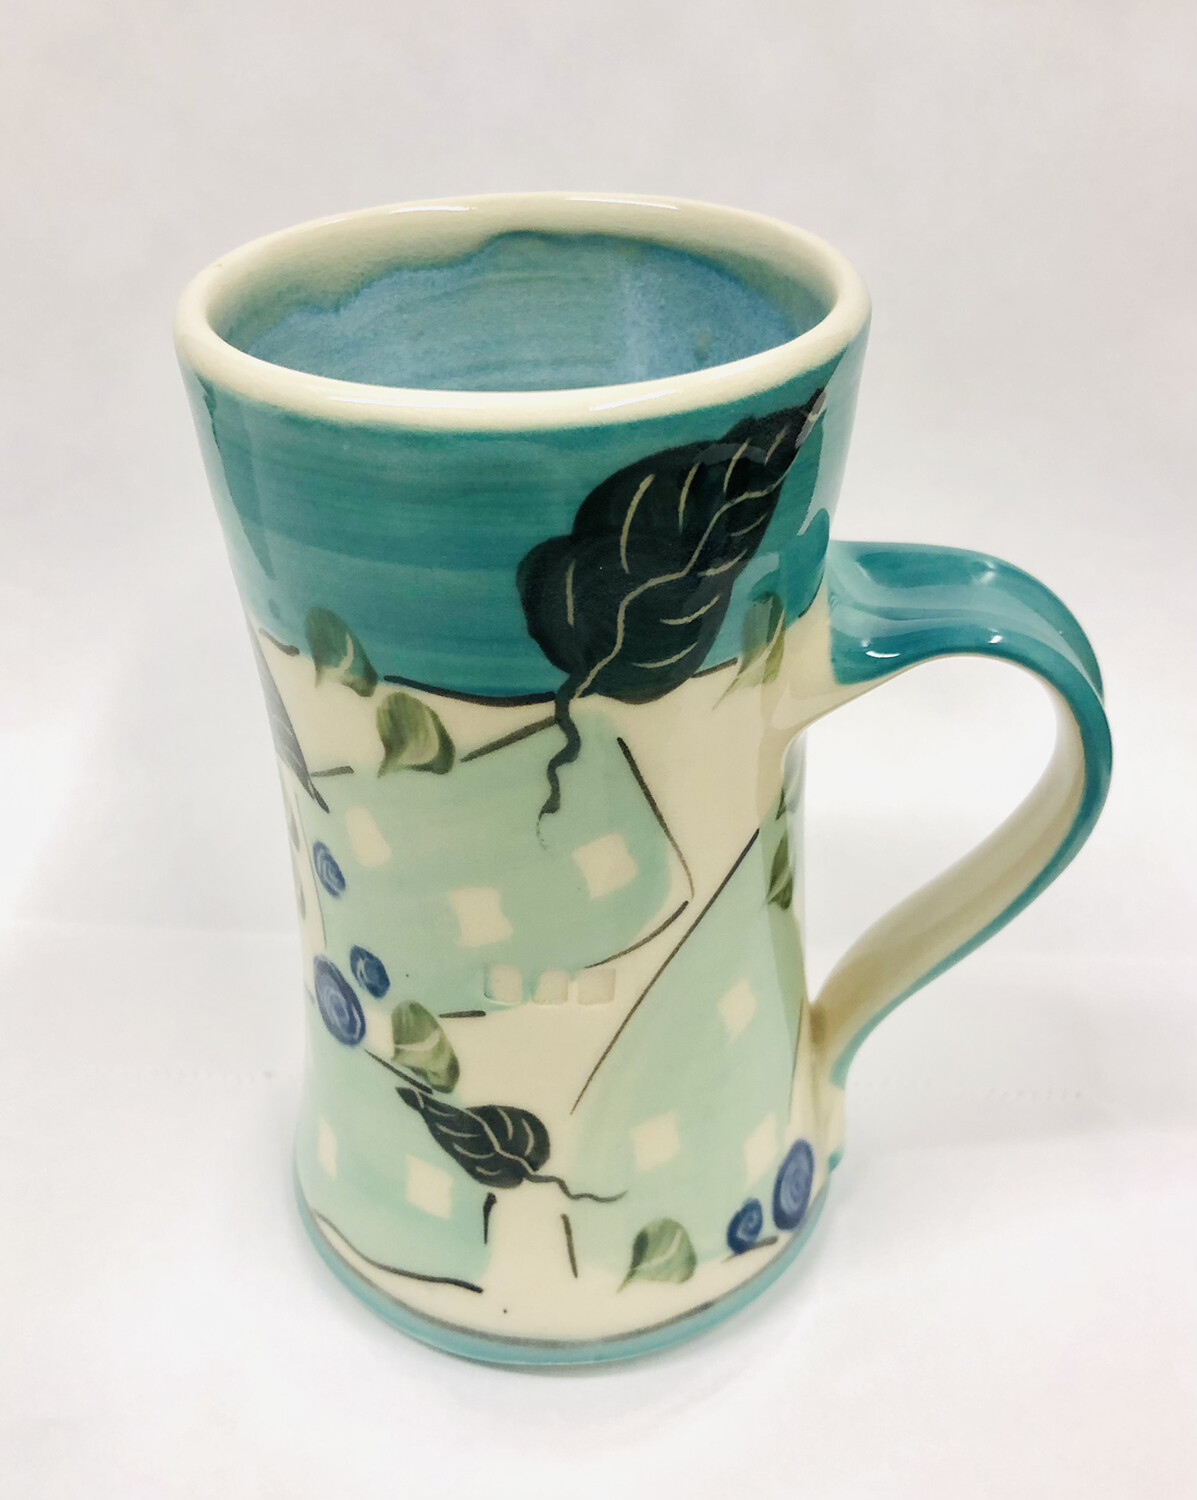 Teal Mug Blue Inside - Keffer